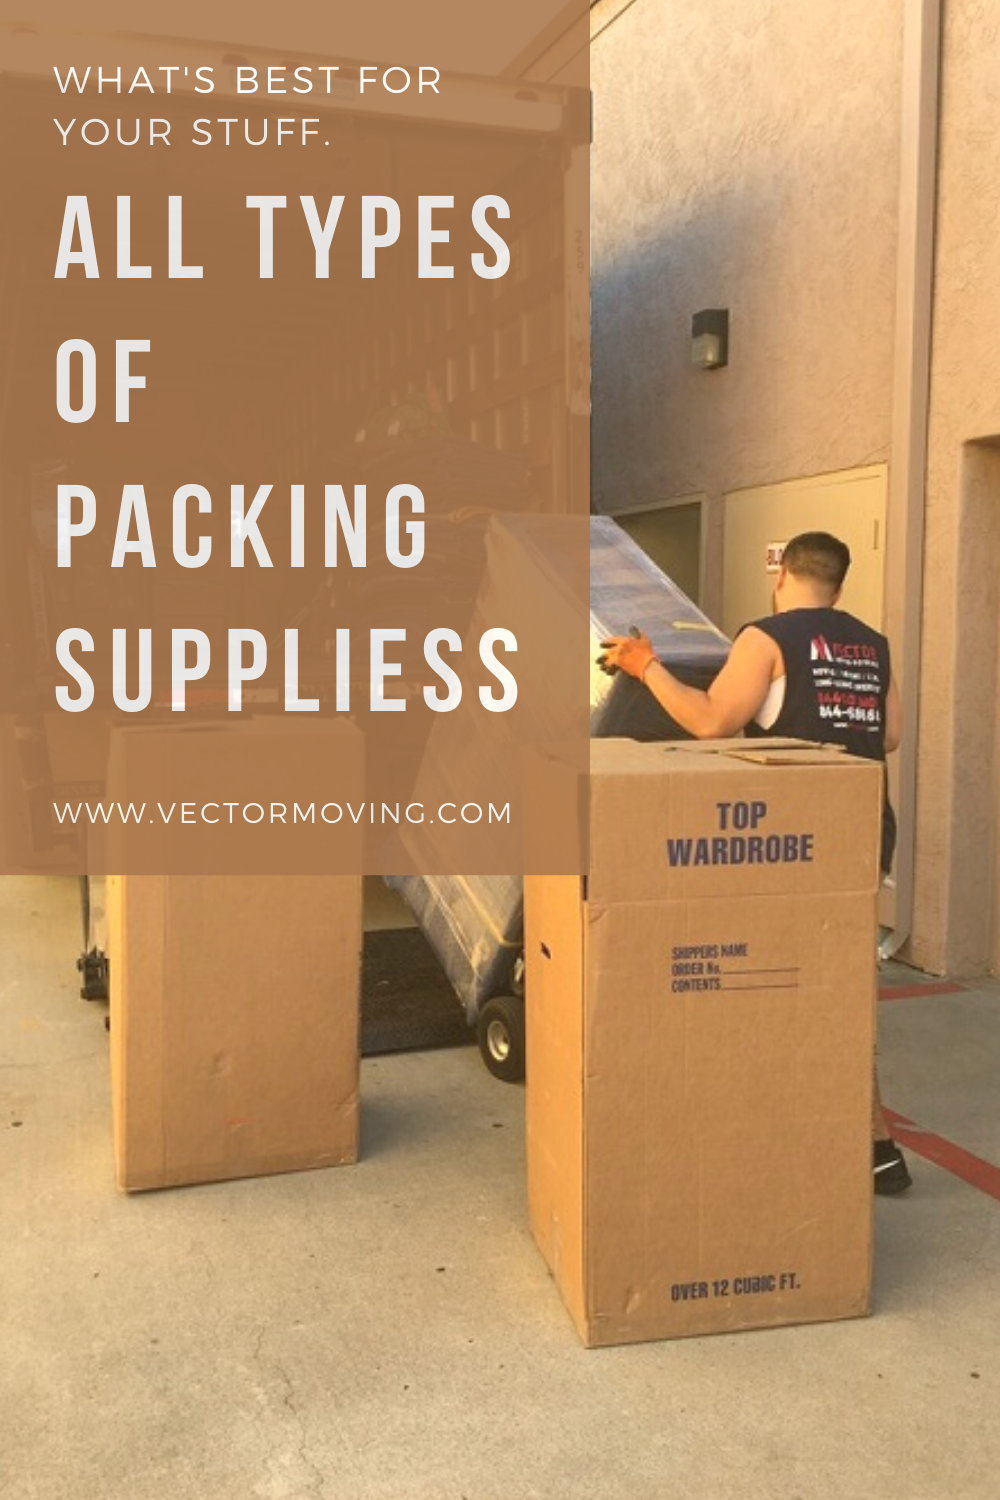 What's Best for Your Stuff. When you're preparing to move, it's important to have the right supplies – including moving boxes. Unique packaging supplies come in all forms and kinds. #moving #realestate #movers #relocation #movingday #newhome #movingcompany #packing #storage #realtor #home #move #movingout #professionalmovers #househunting #packers #love #realestateagent #removals #forsale #newhouse #relocating #movingservice #localmovers #property #selfstorage #travel #movingtips #movinghouse